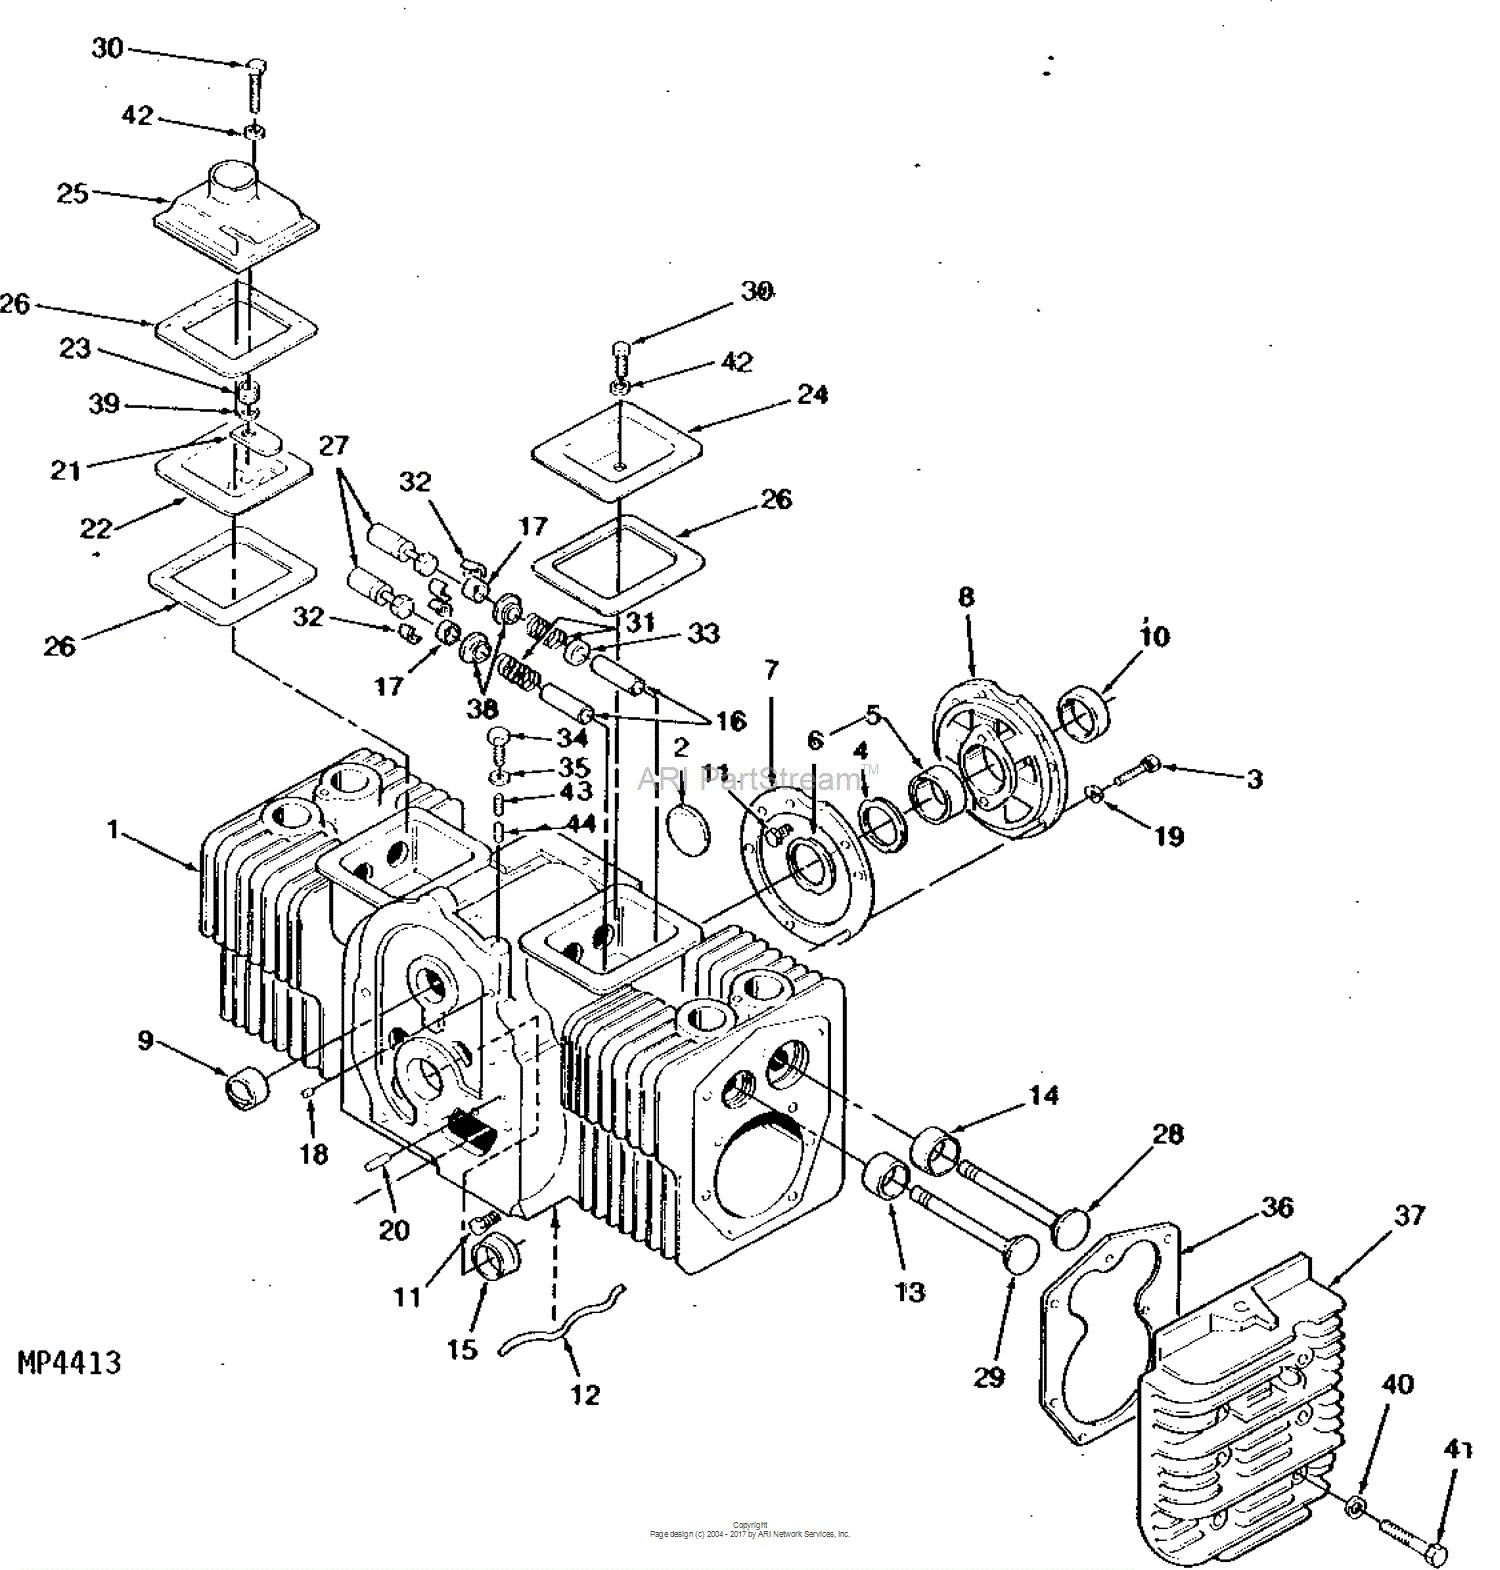 hight resolution of onan engine parts diagram john deere parts diagrams john deere 317 hydrostatic tractor 17 hp of